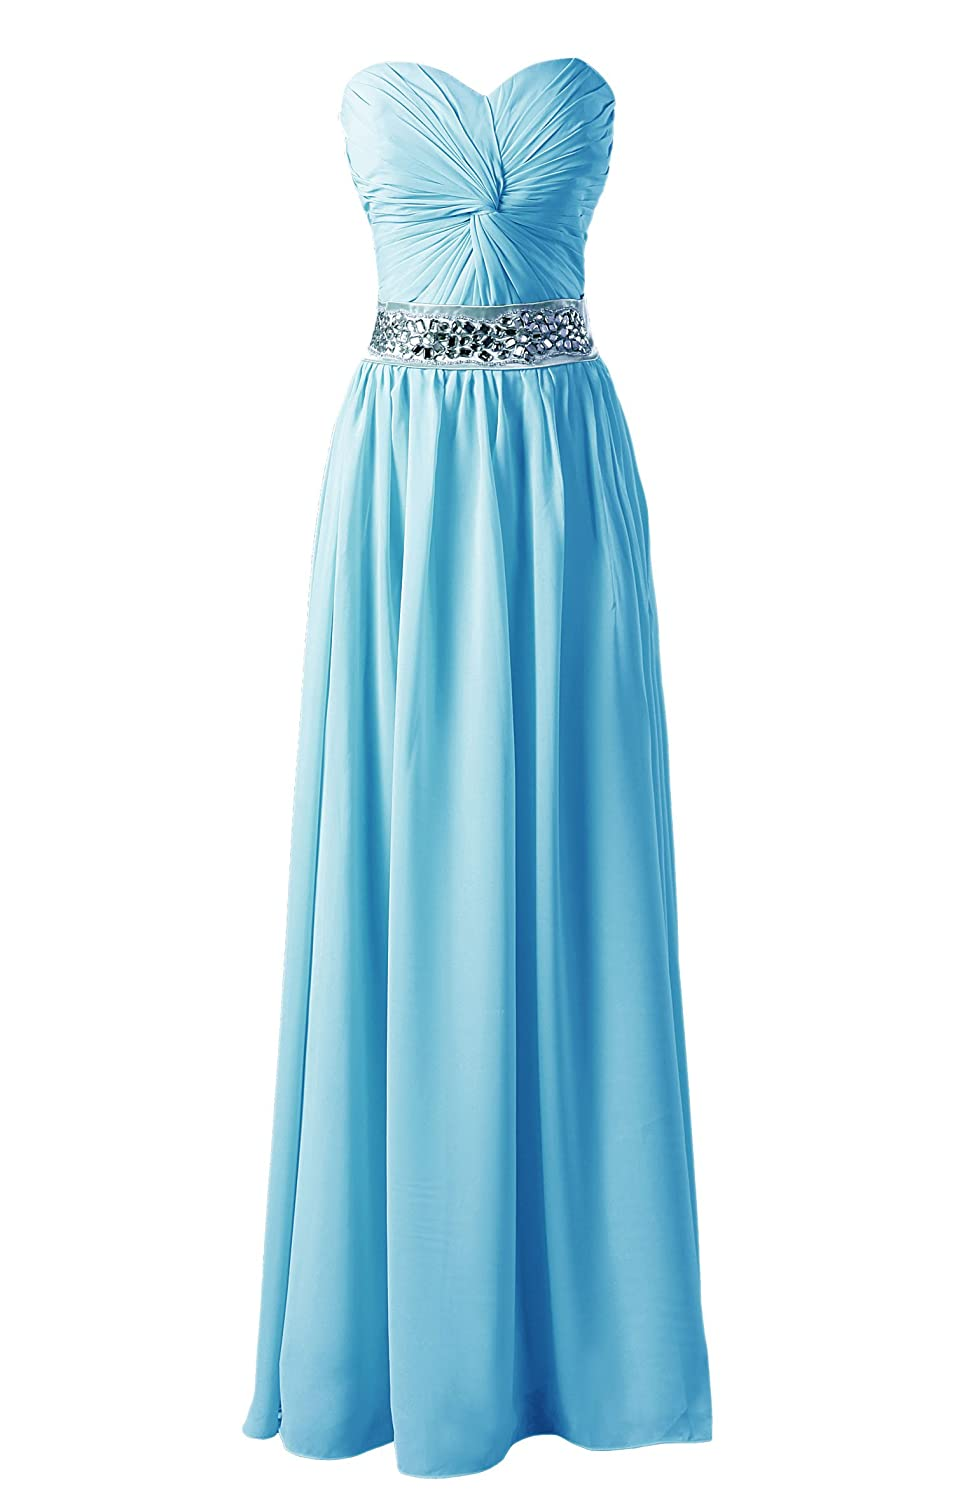 Dressystar Fashion Plaza chiffon long strapless evening dress bridesmaid dress prom dress Blue Size 16